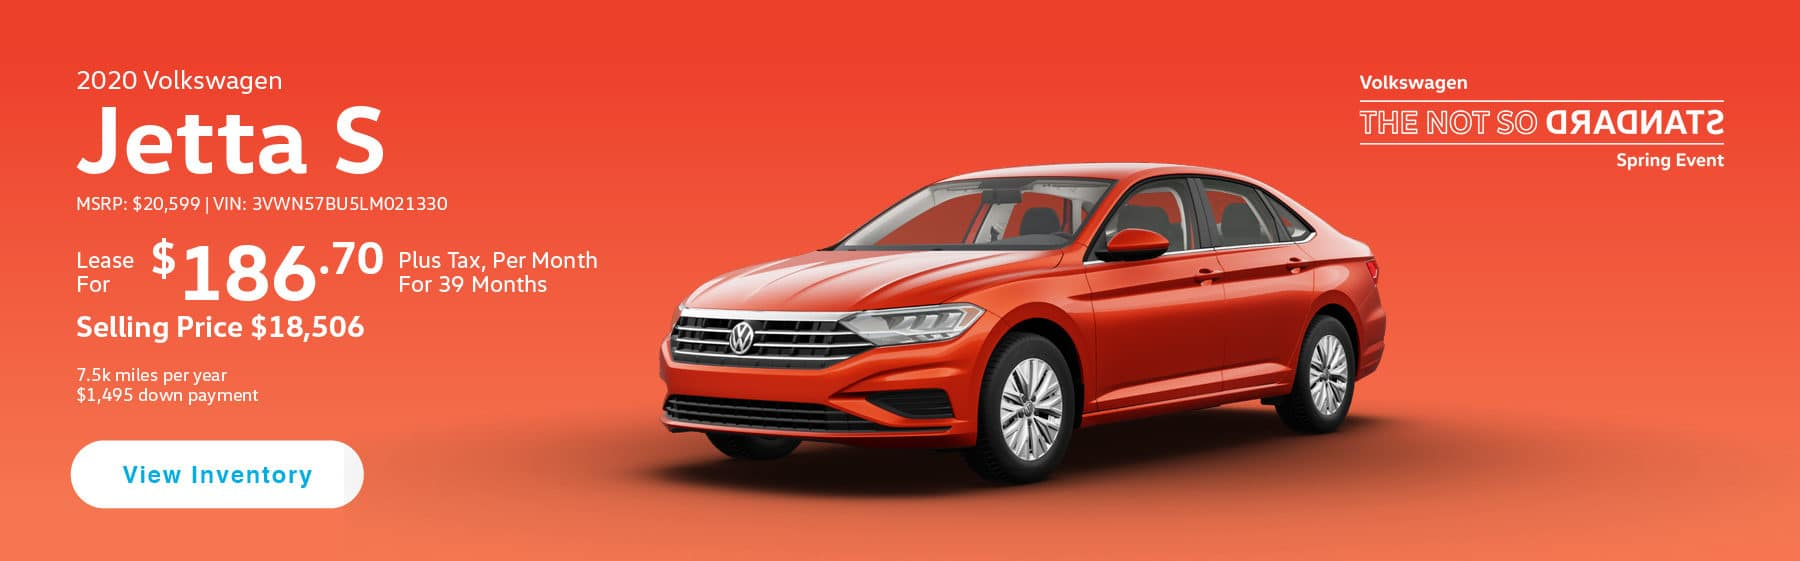 Lease the 2019 Jetta S for $186.70 per month, plus tax for 39 months.